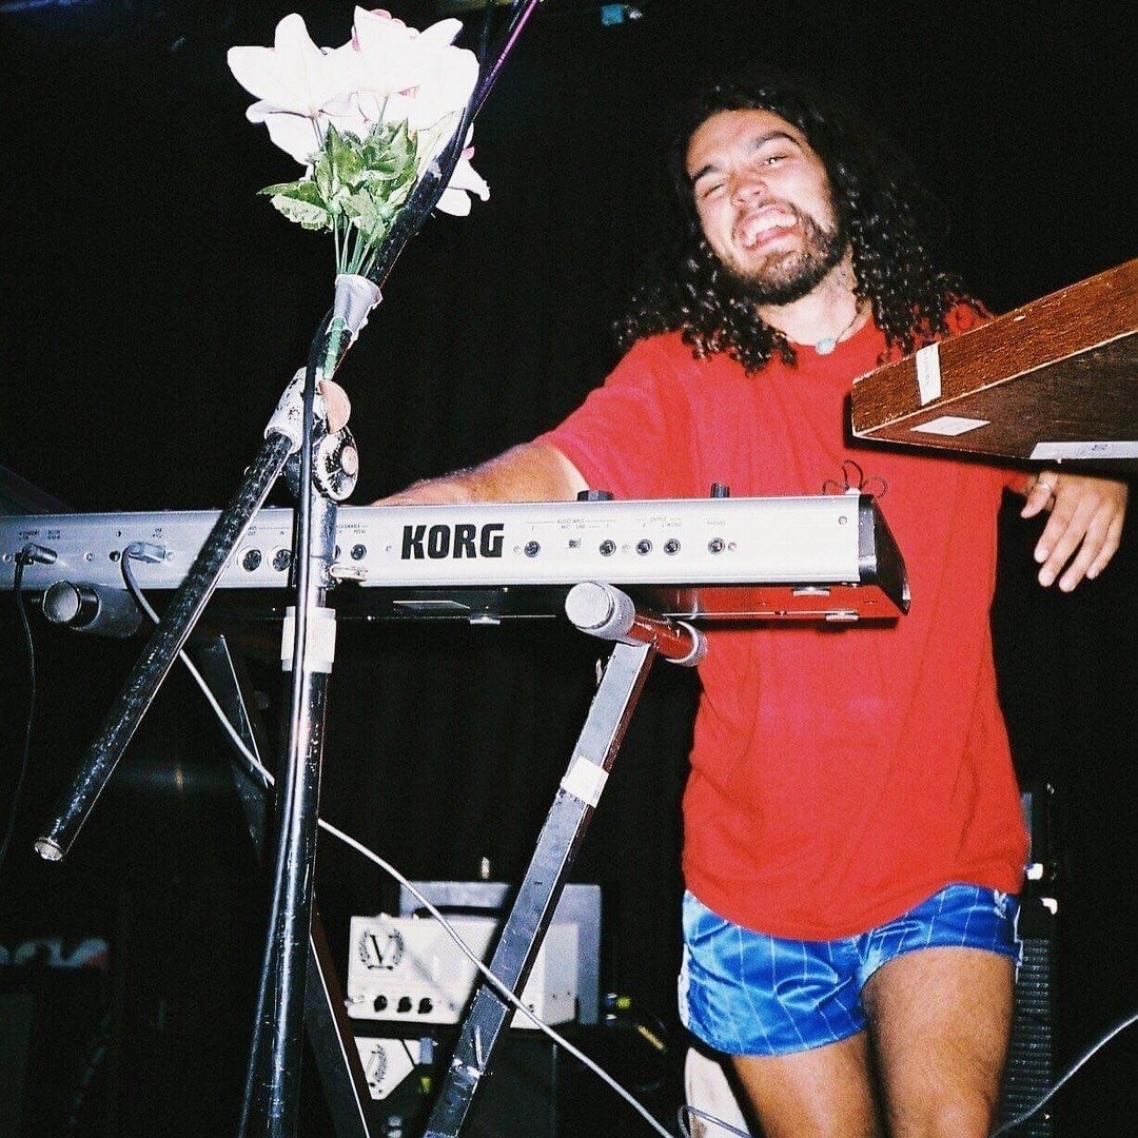 Amastro at Oxford Art Factory October 27, 2018 - GiggedIn